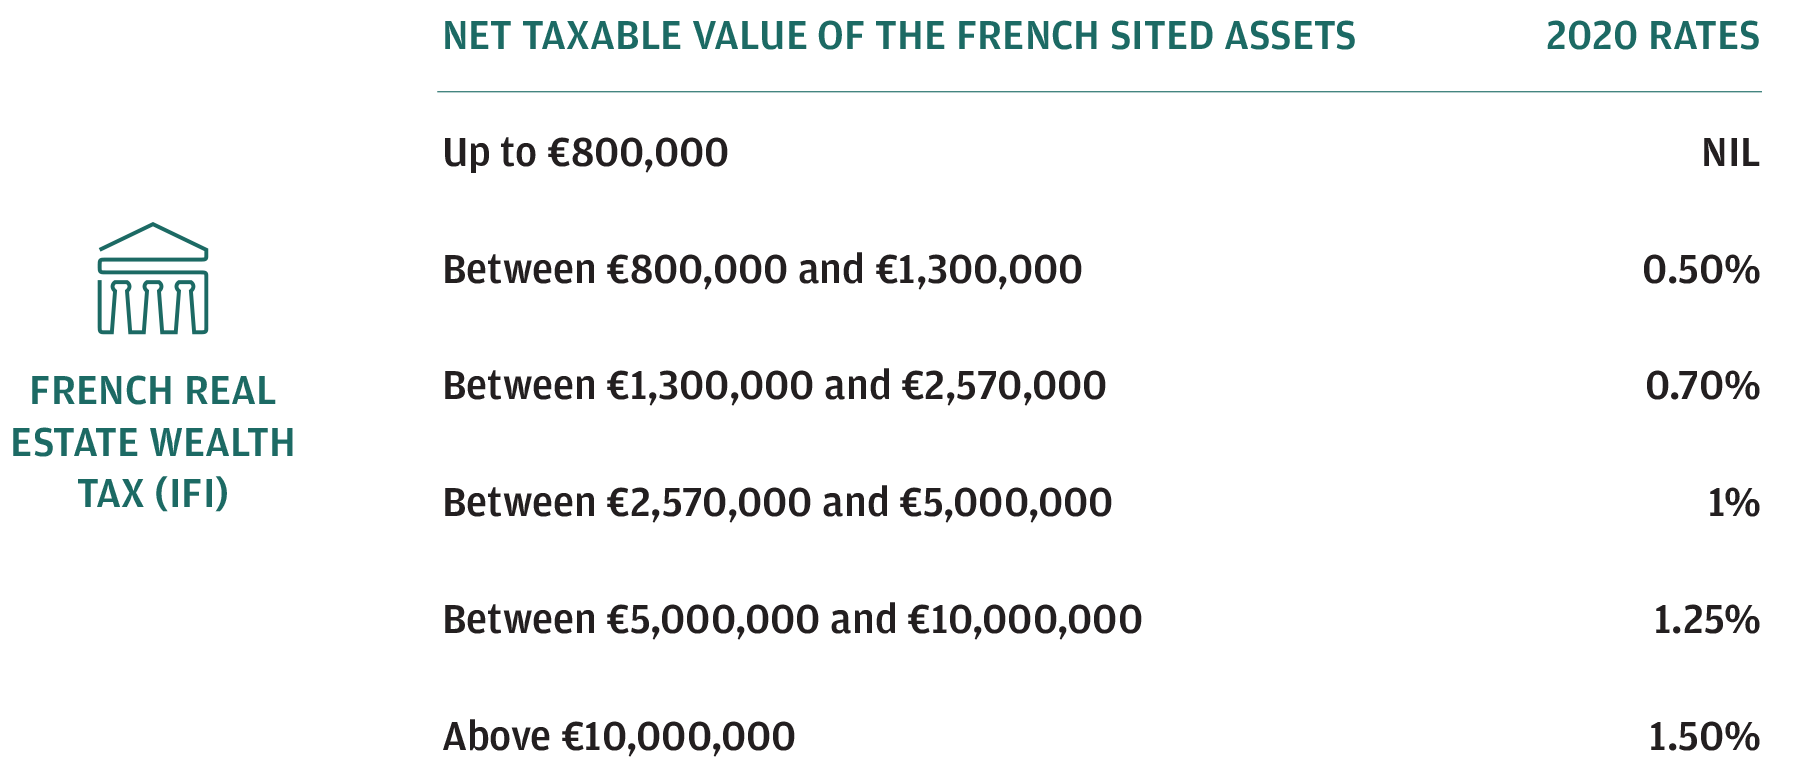 Net taxable value of the French sited assets